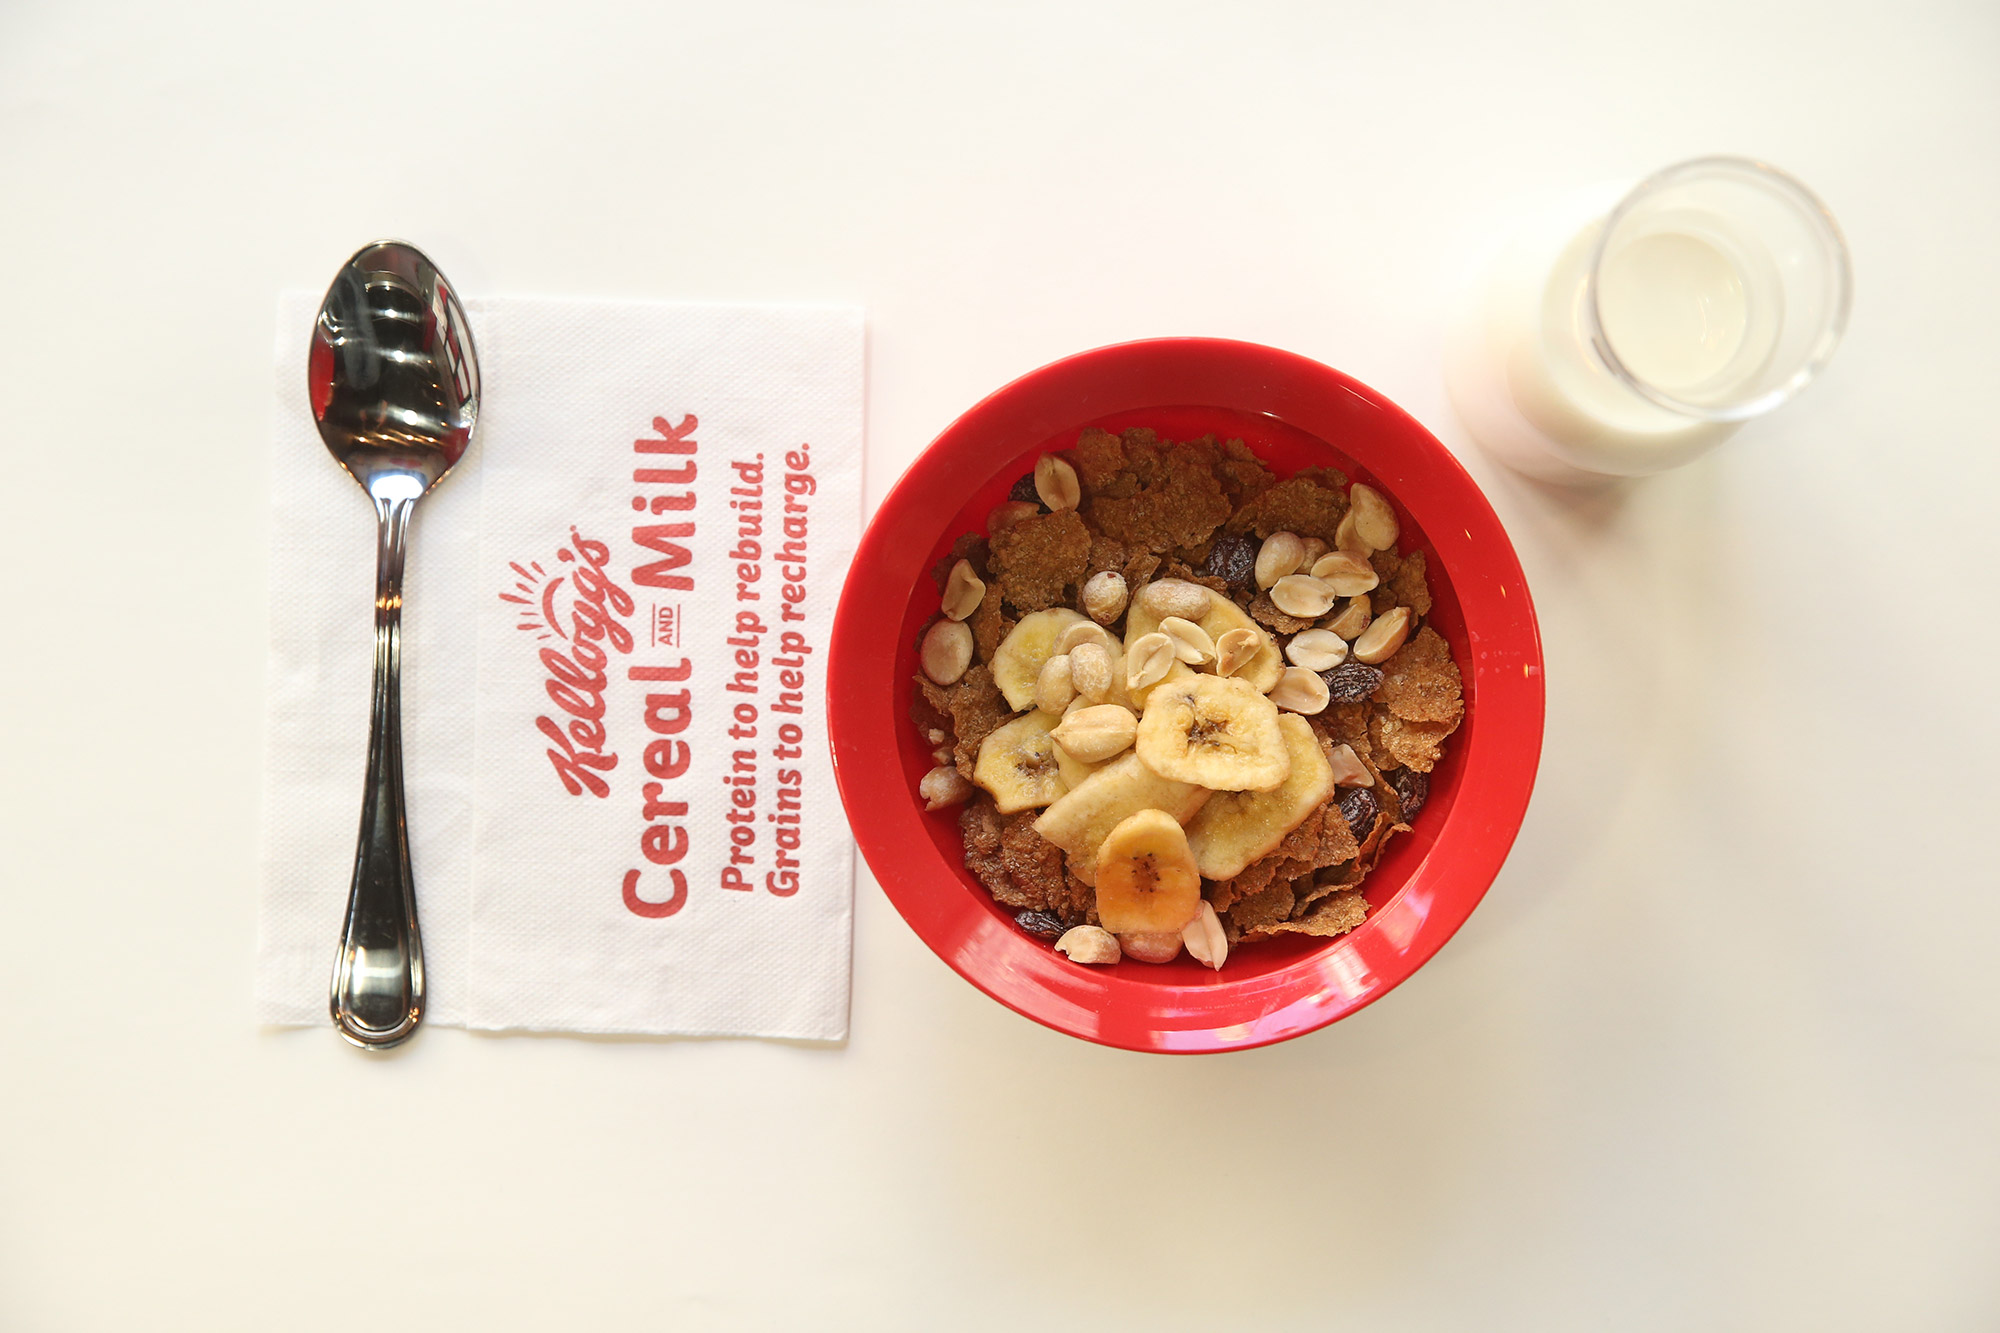 Kellogg's® Recharge Bar Served Up Extraordinary Mornings to